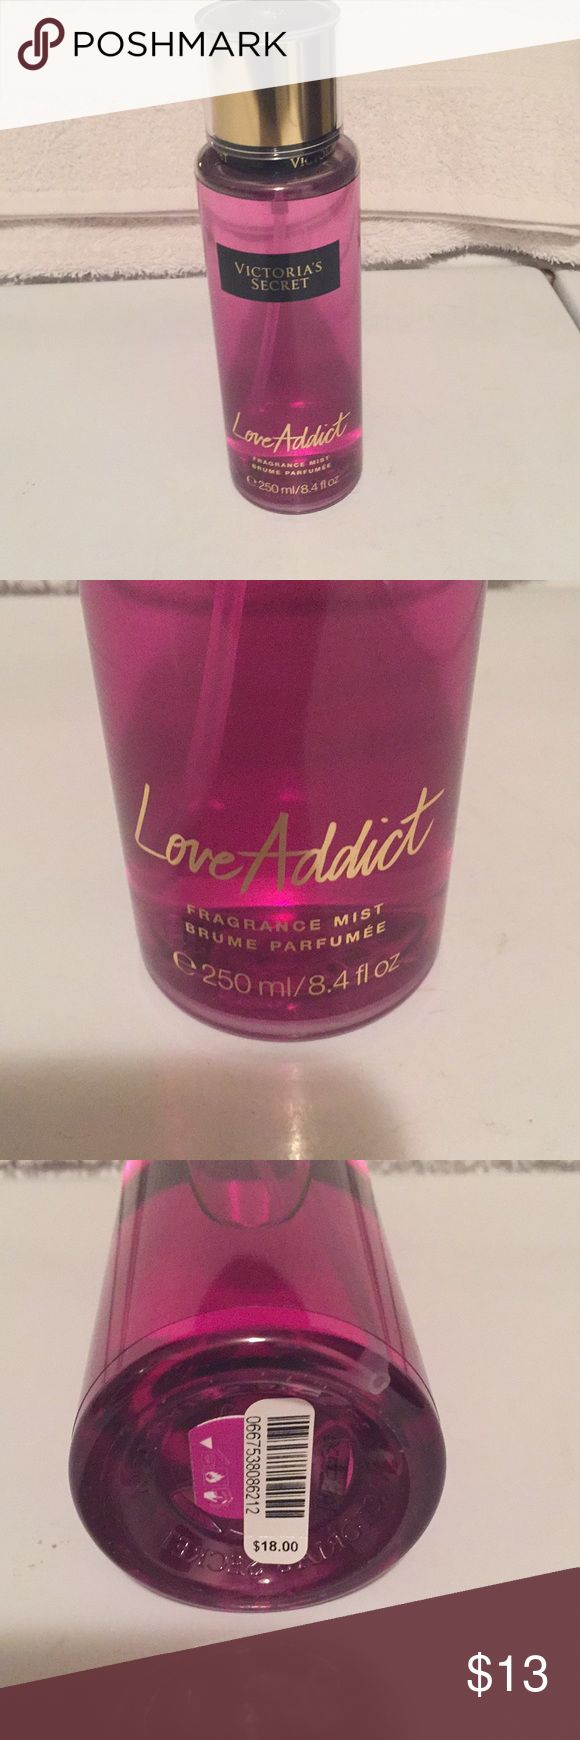 Victoria's Secret Love Addict Fragrance Mist Victoria's Secret Love Addict Fragrance Mist!! 8.4 fl. oz. bottle, new. White orchestra and Blood Orange Scented!!! Smells so amazing!! Bundle with other items to save on shipping. Any other questions feel free to ask!! Victoria's Secret Other